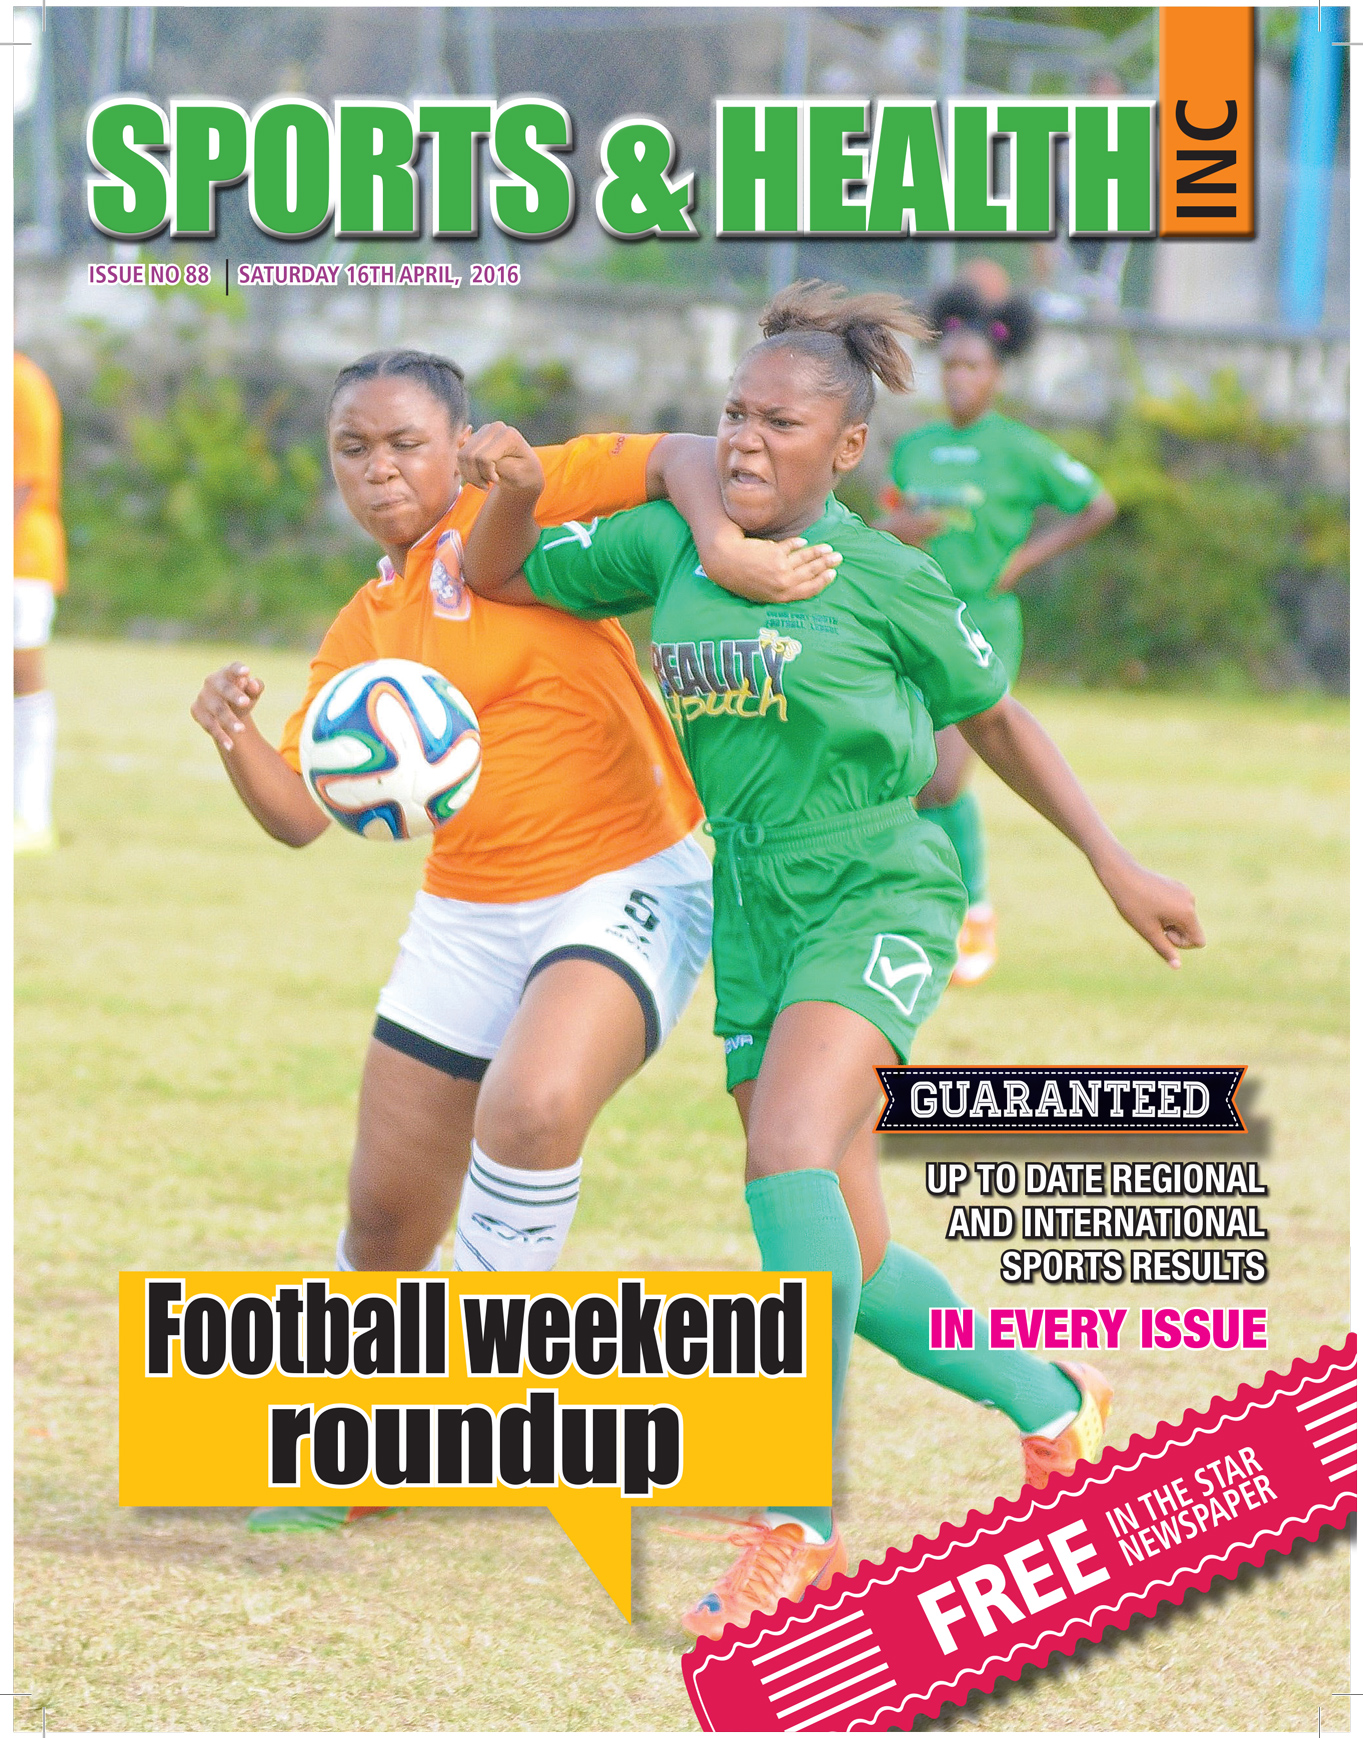 Issue-88-Sat-16-april-Sports-&-Health-Inc-new-1